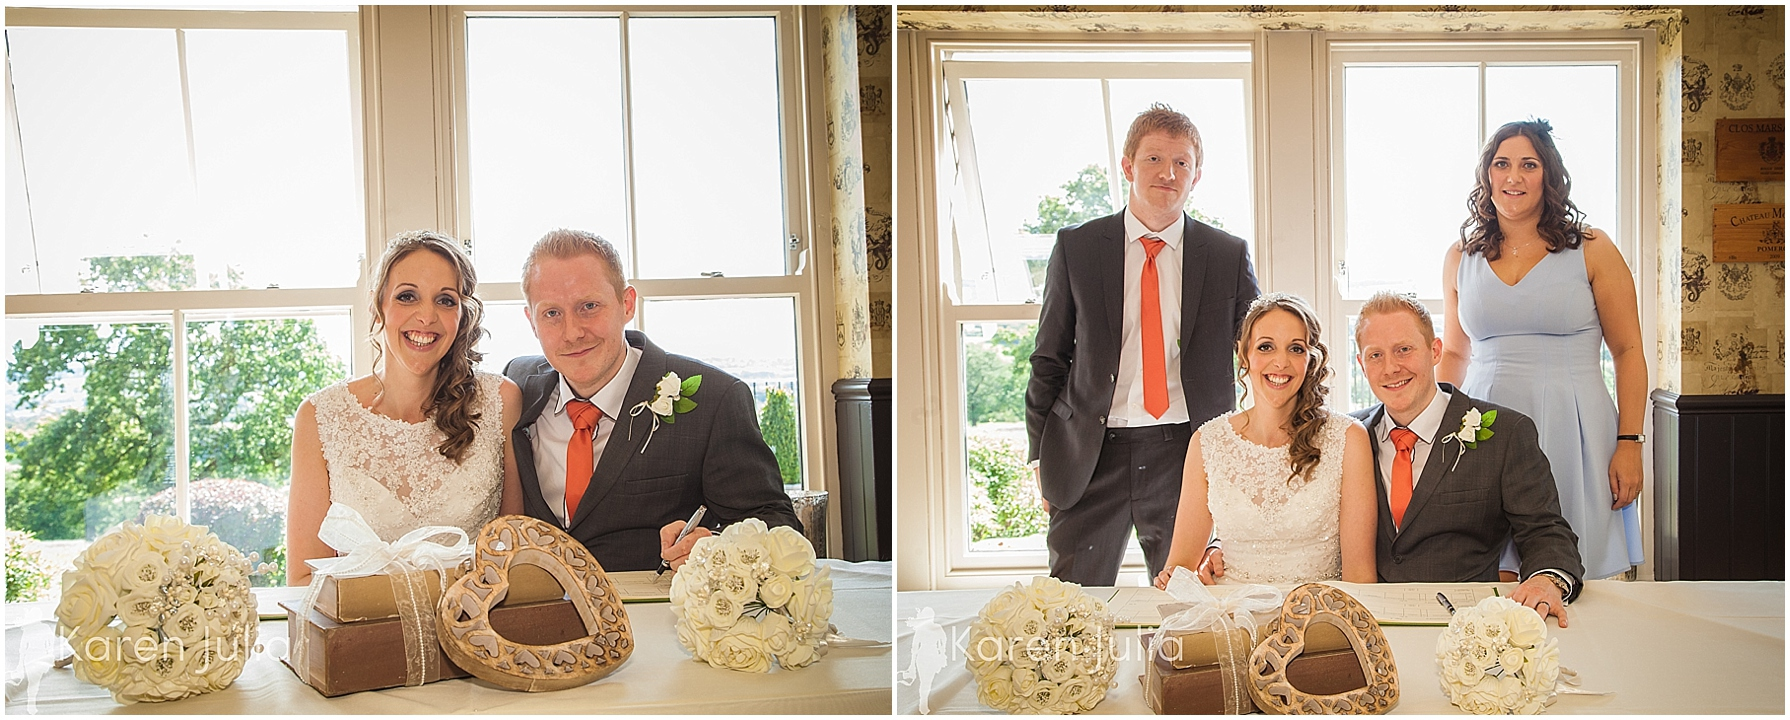 Shireburn-Arms-Wedding-Photography-25